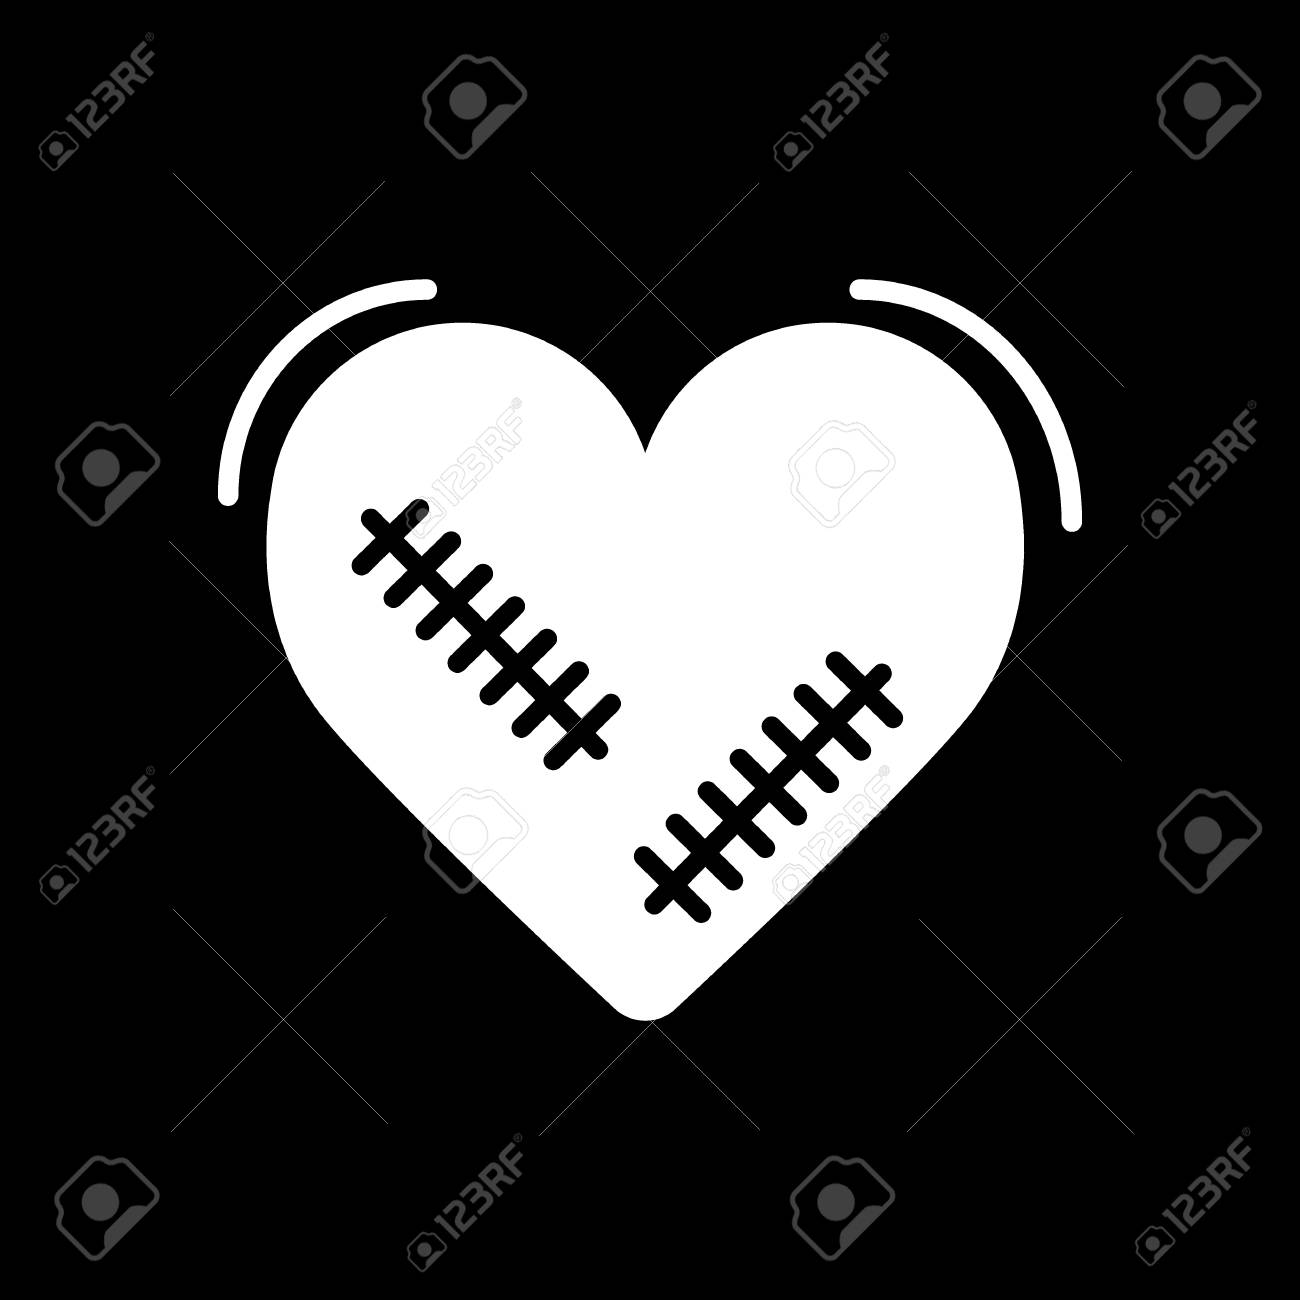 Broken Heart Vector Icon With Wound Patches Isolated In Black